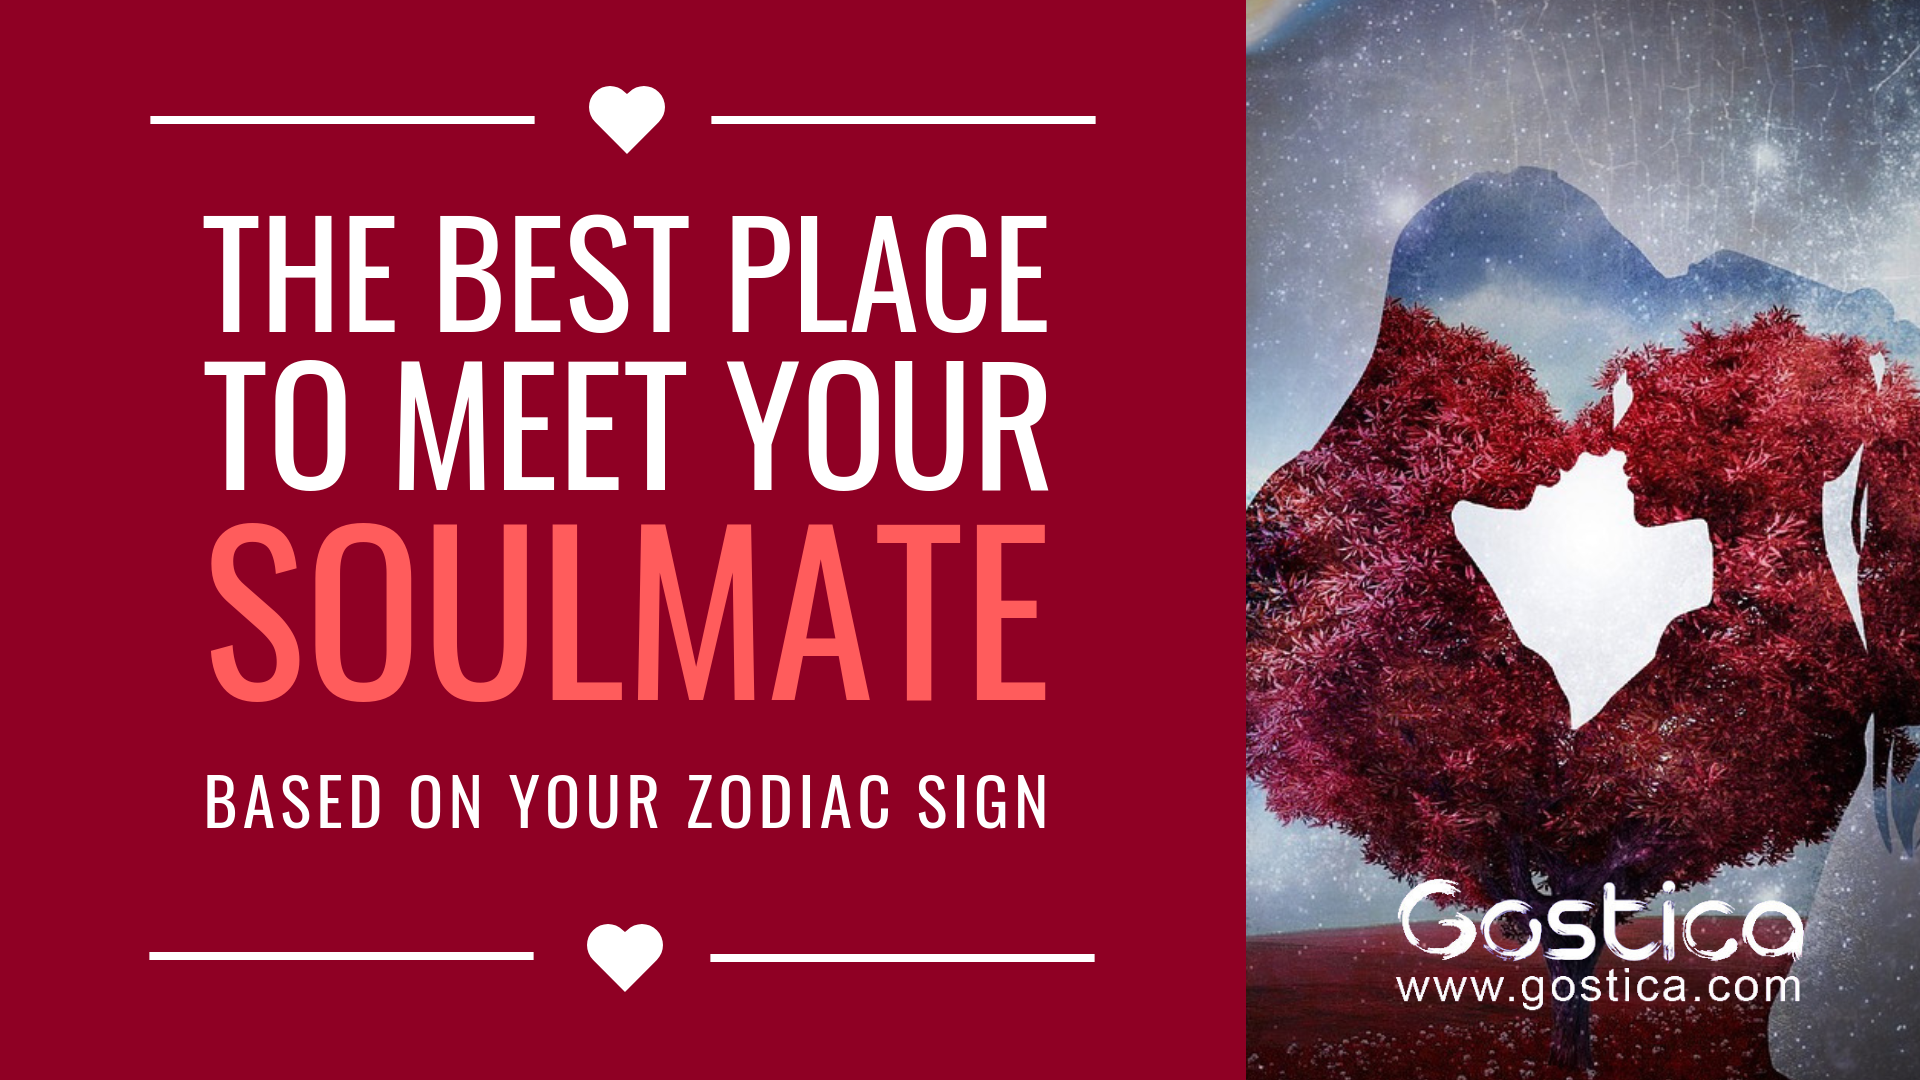 soulmate, zodiac sign